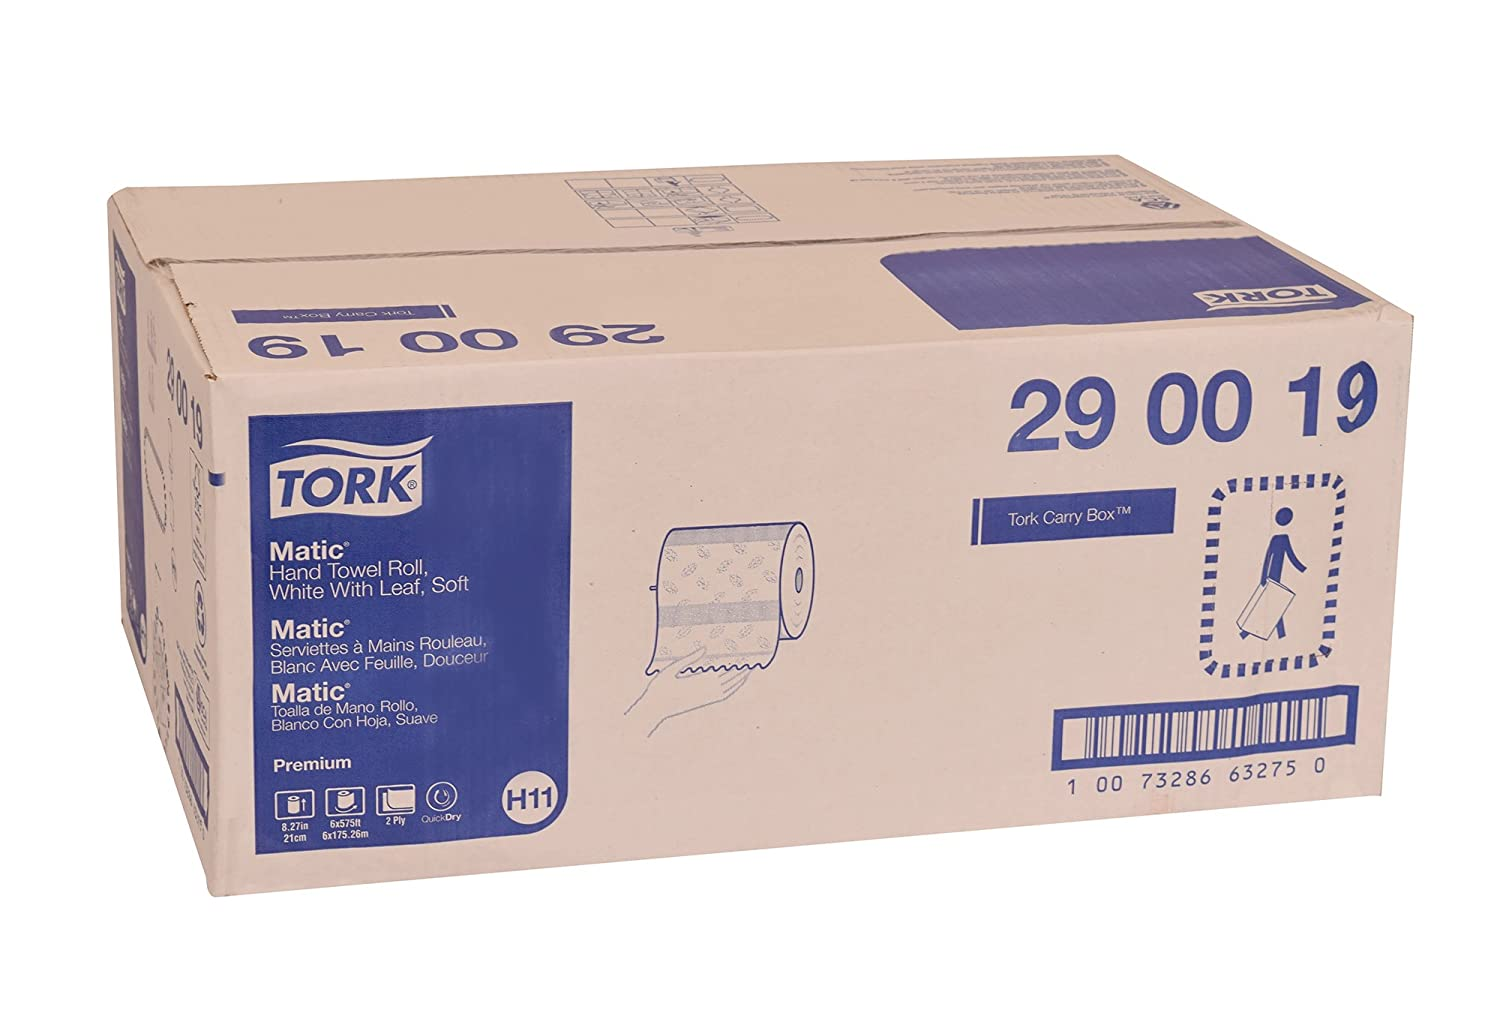 Tork 290019 Premium Soft Matic Paper Hand Towel Roll, 2-Ply, 8.27